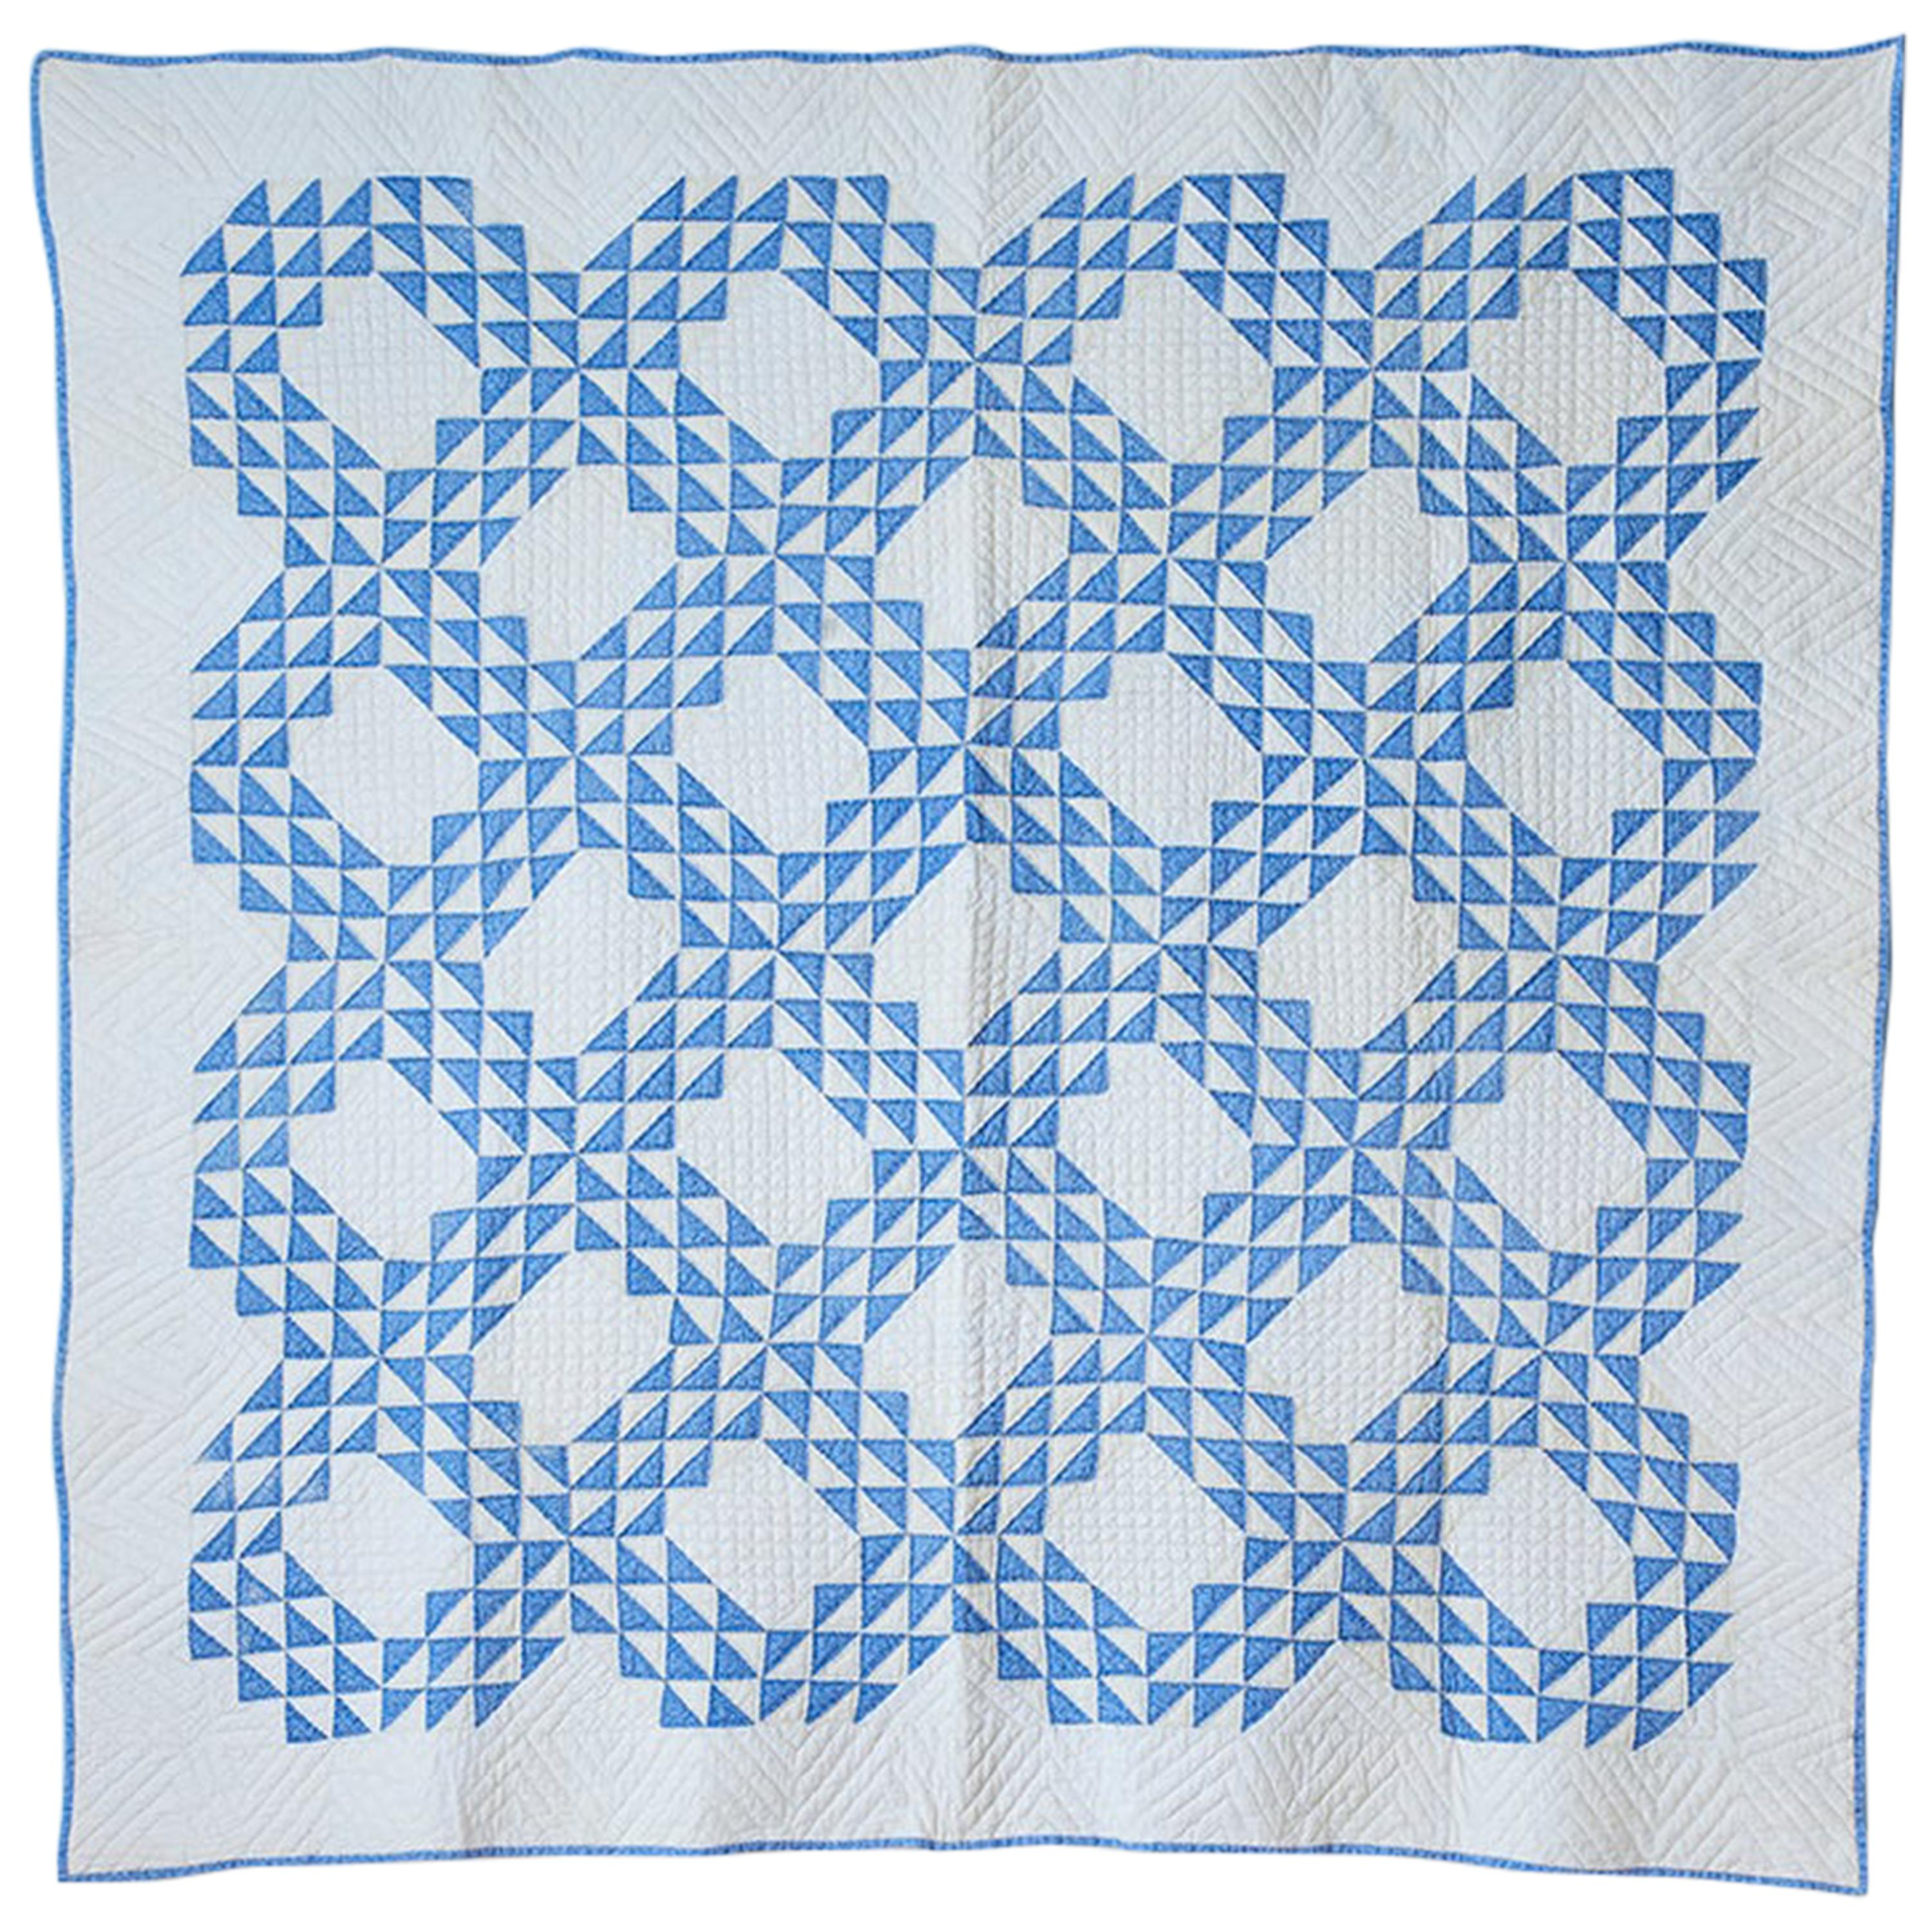 """Antique Patchwork """"Lancaster Ocean Waves"""" Quilt in Blue and White, USA, 1890s"""